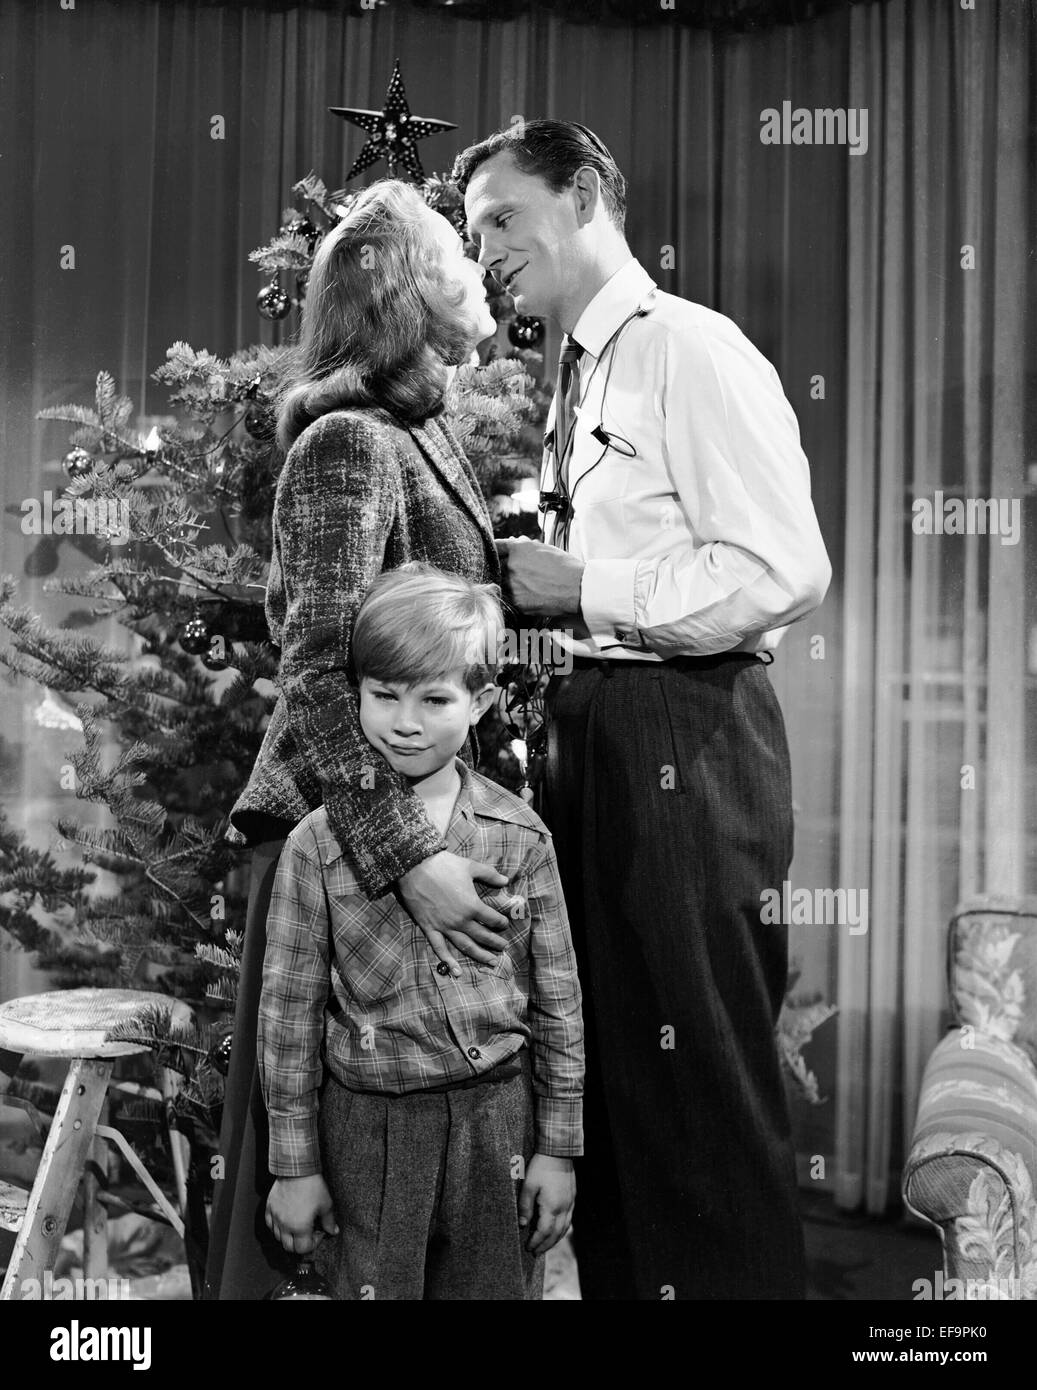 Janet leigh gordon gebert wendell corey holiday affair Classic christmas films black and white